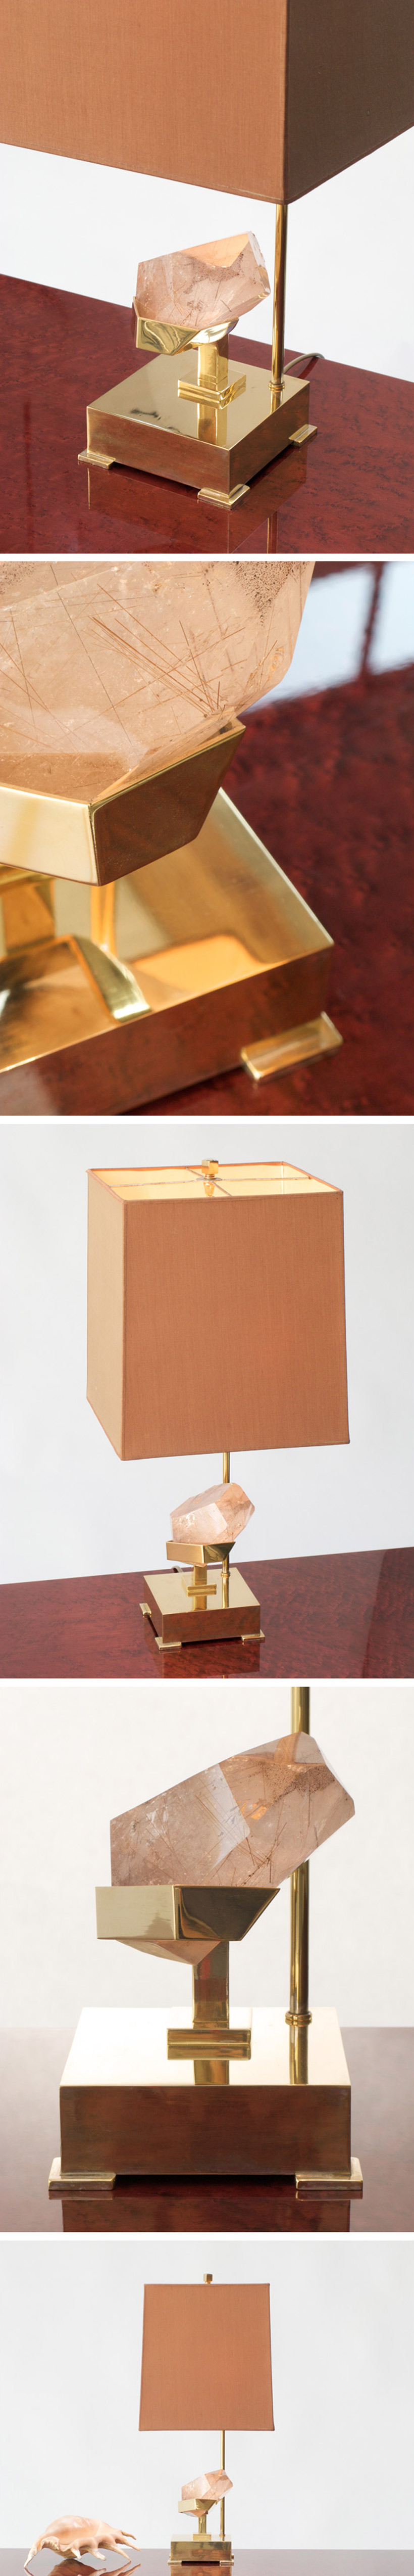 Willy Daro Table lamp with rutile quartz Large